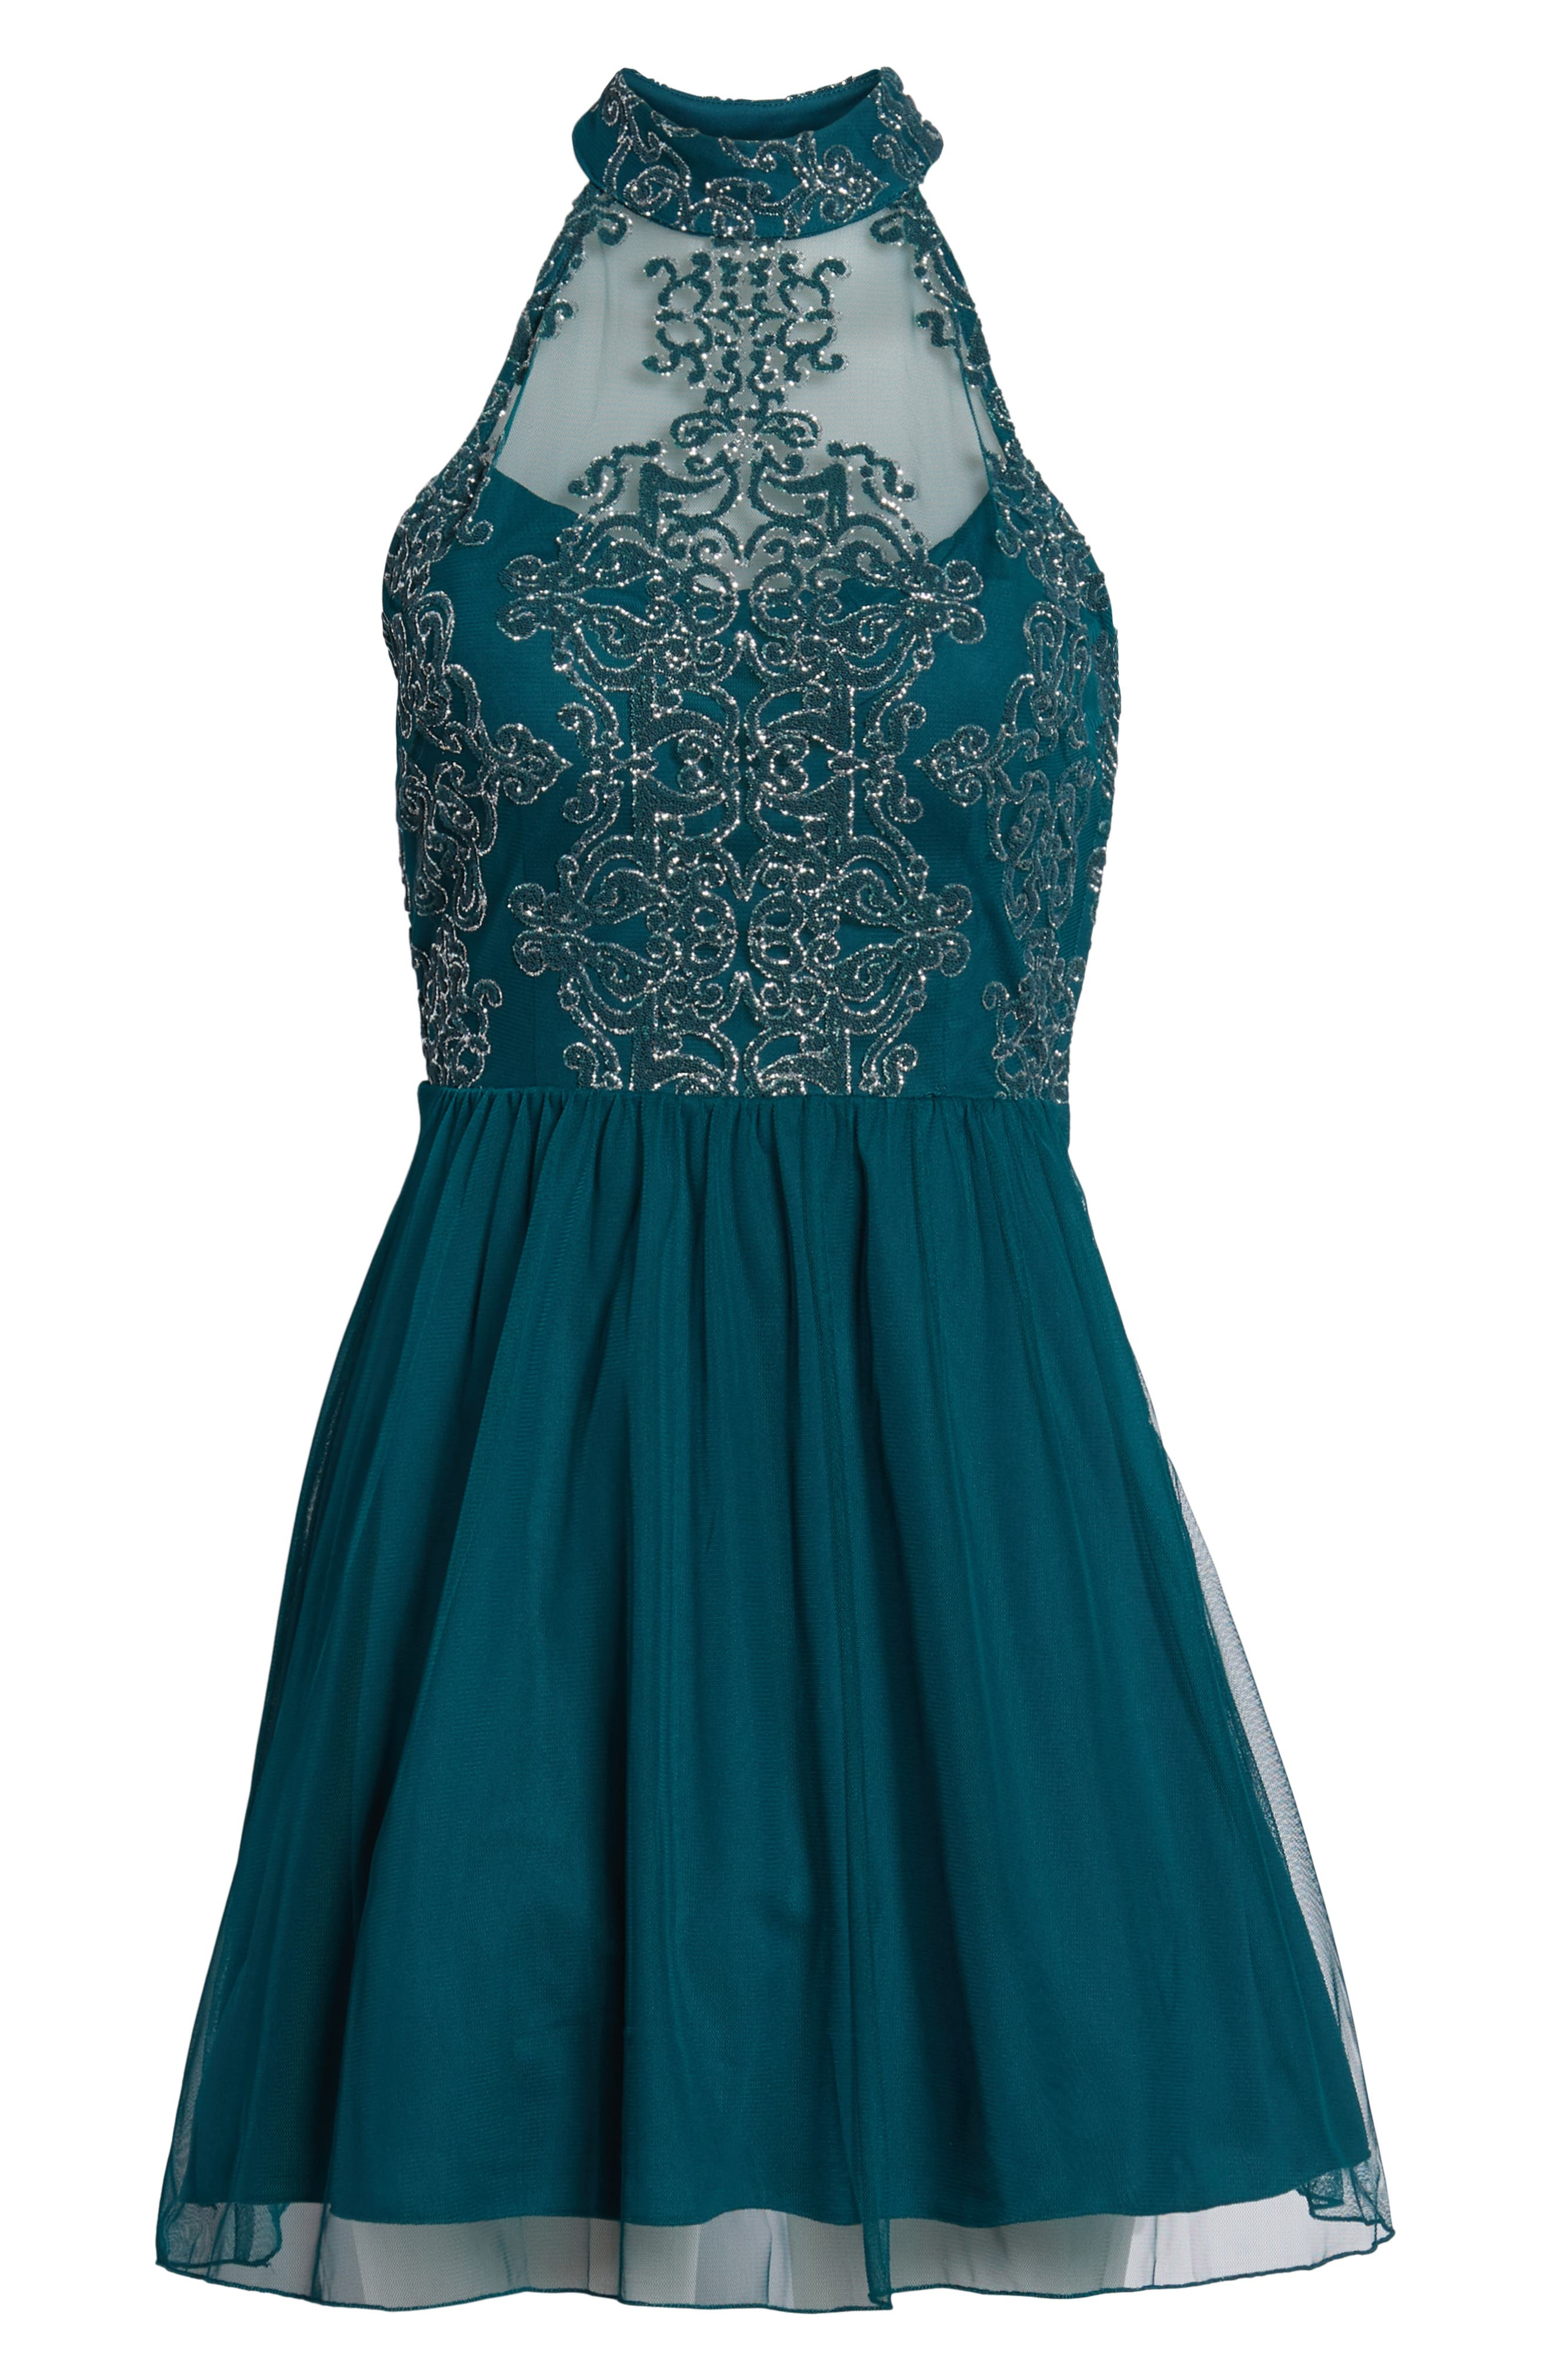 SPEECHLESS, Lace Fit & Flare Dress, Alternate thumbnail 7, color, EMERALD